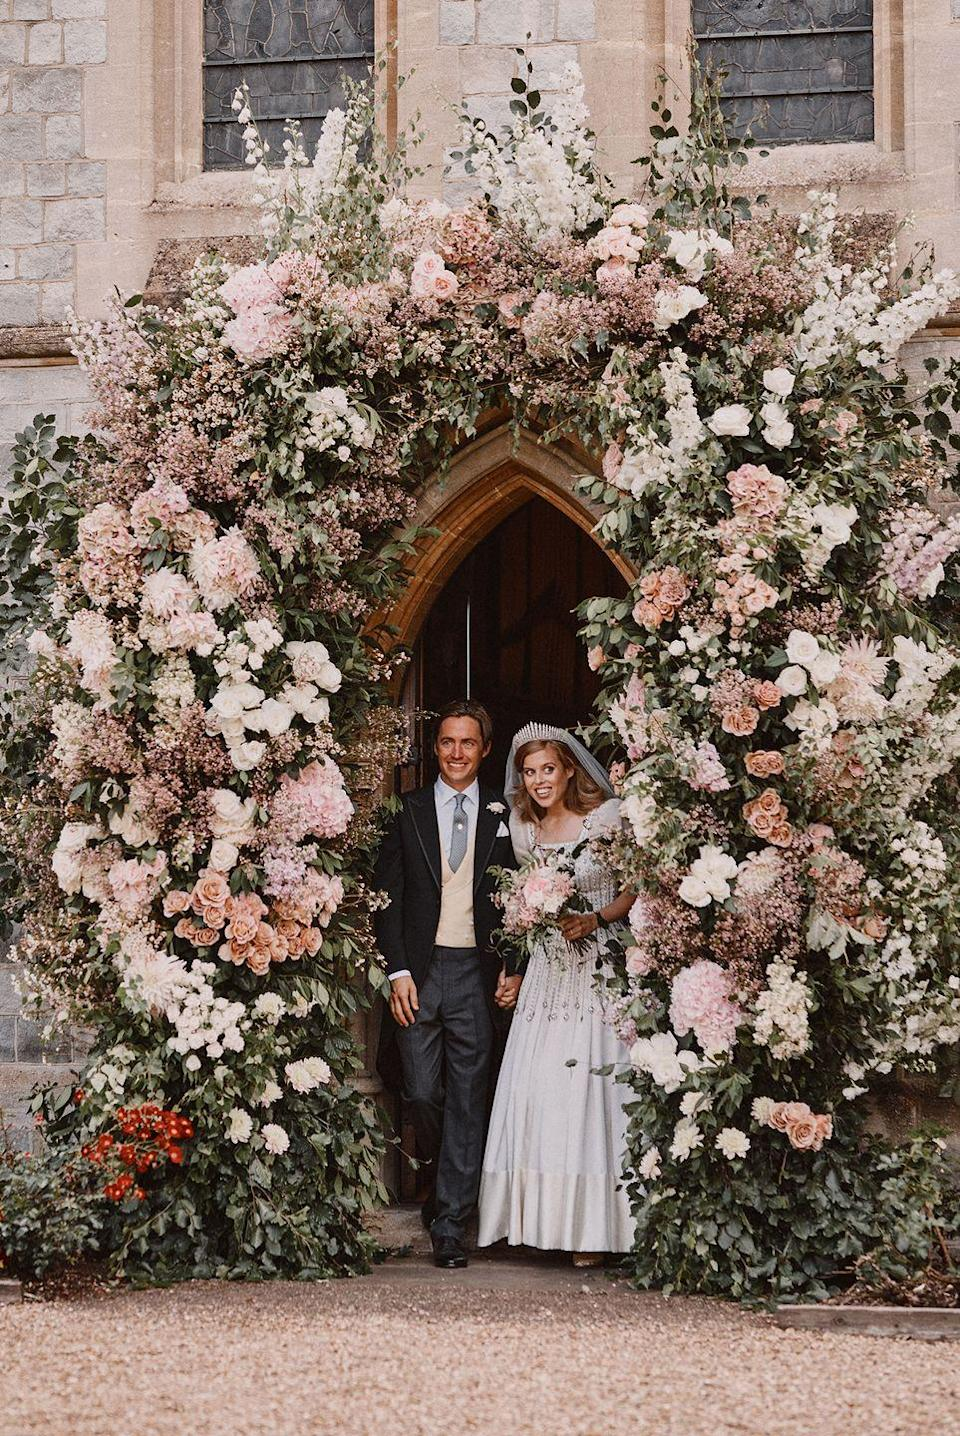 """<p>The couple tied the knot with an intimate wedding ceremony at the <a href=""""https://www.townandcountrymag.com/society/tradition/a33348976/princess-beatrice-edoardo-mapelli-mozzi-wedding-venue-royal-chapel-all-saints/"""" rel=""""nofollow noopener"""" target=""""_blank"""" data-ylk=""""slk:Royal Chapel of All Saints"""" class=""""link rapid-noclick-resp"""">Royal Chapel of All Saints</a> at Royal Lodge, after the coronavirus pandemic put their original wedding plans on pause. The royal wedding was said to have had a <a href=""""https://www.townandcountrymag.com/society/tradition/a33356019/princess-beatrices-royal-wedding-secret-garden-theme/"""" rel=""""nofollow noopener"""" target=""""_blank"""" data-ylk=""""slk:""""secret garden"""" theme"""" class=""""link rapid-noclick-resp"""">""""secret garden"""" theme</a>. Princess Beatrice wore Queen Mary's diamond fringe tiara and<a href=""""https://www.townandcountrymag.com/society/tradition/a31085338/princess-beatrice-wedding-dress/"""" rel=""""nofollow noopener"""" target=""""_blank"""" data-ylk=""""slk:a vintage wedding dress by famed fashion designer Norman Hartness"""" class=""""link rapid-noclick-resp""""> a vintage wedding dress by famed fashion designer Norman Hartness</a>, both of which were on loan to her by the Queen.</p>"""